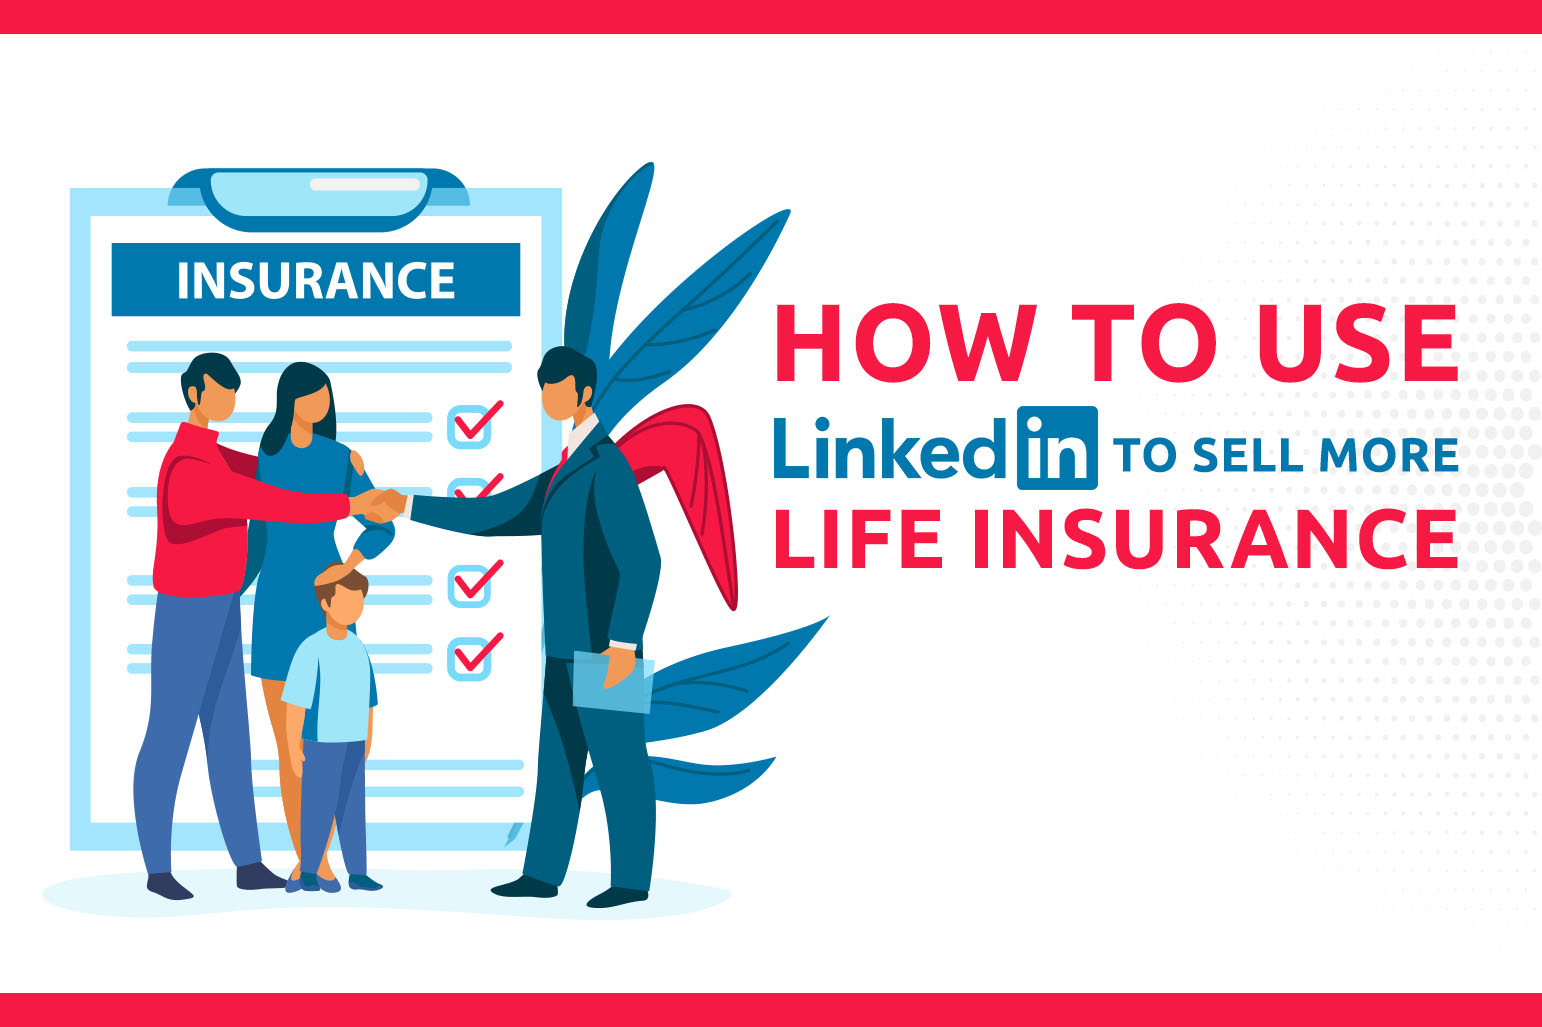 How To Use LinkedIn to Sell More Life Insurance